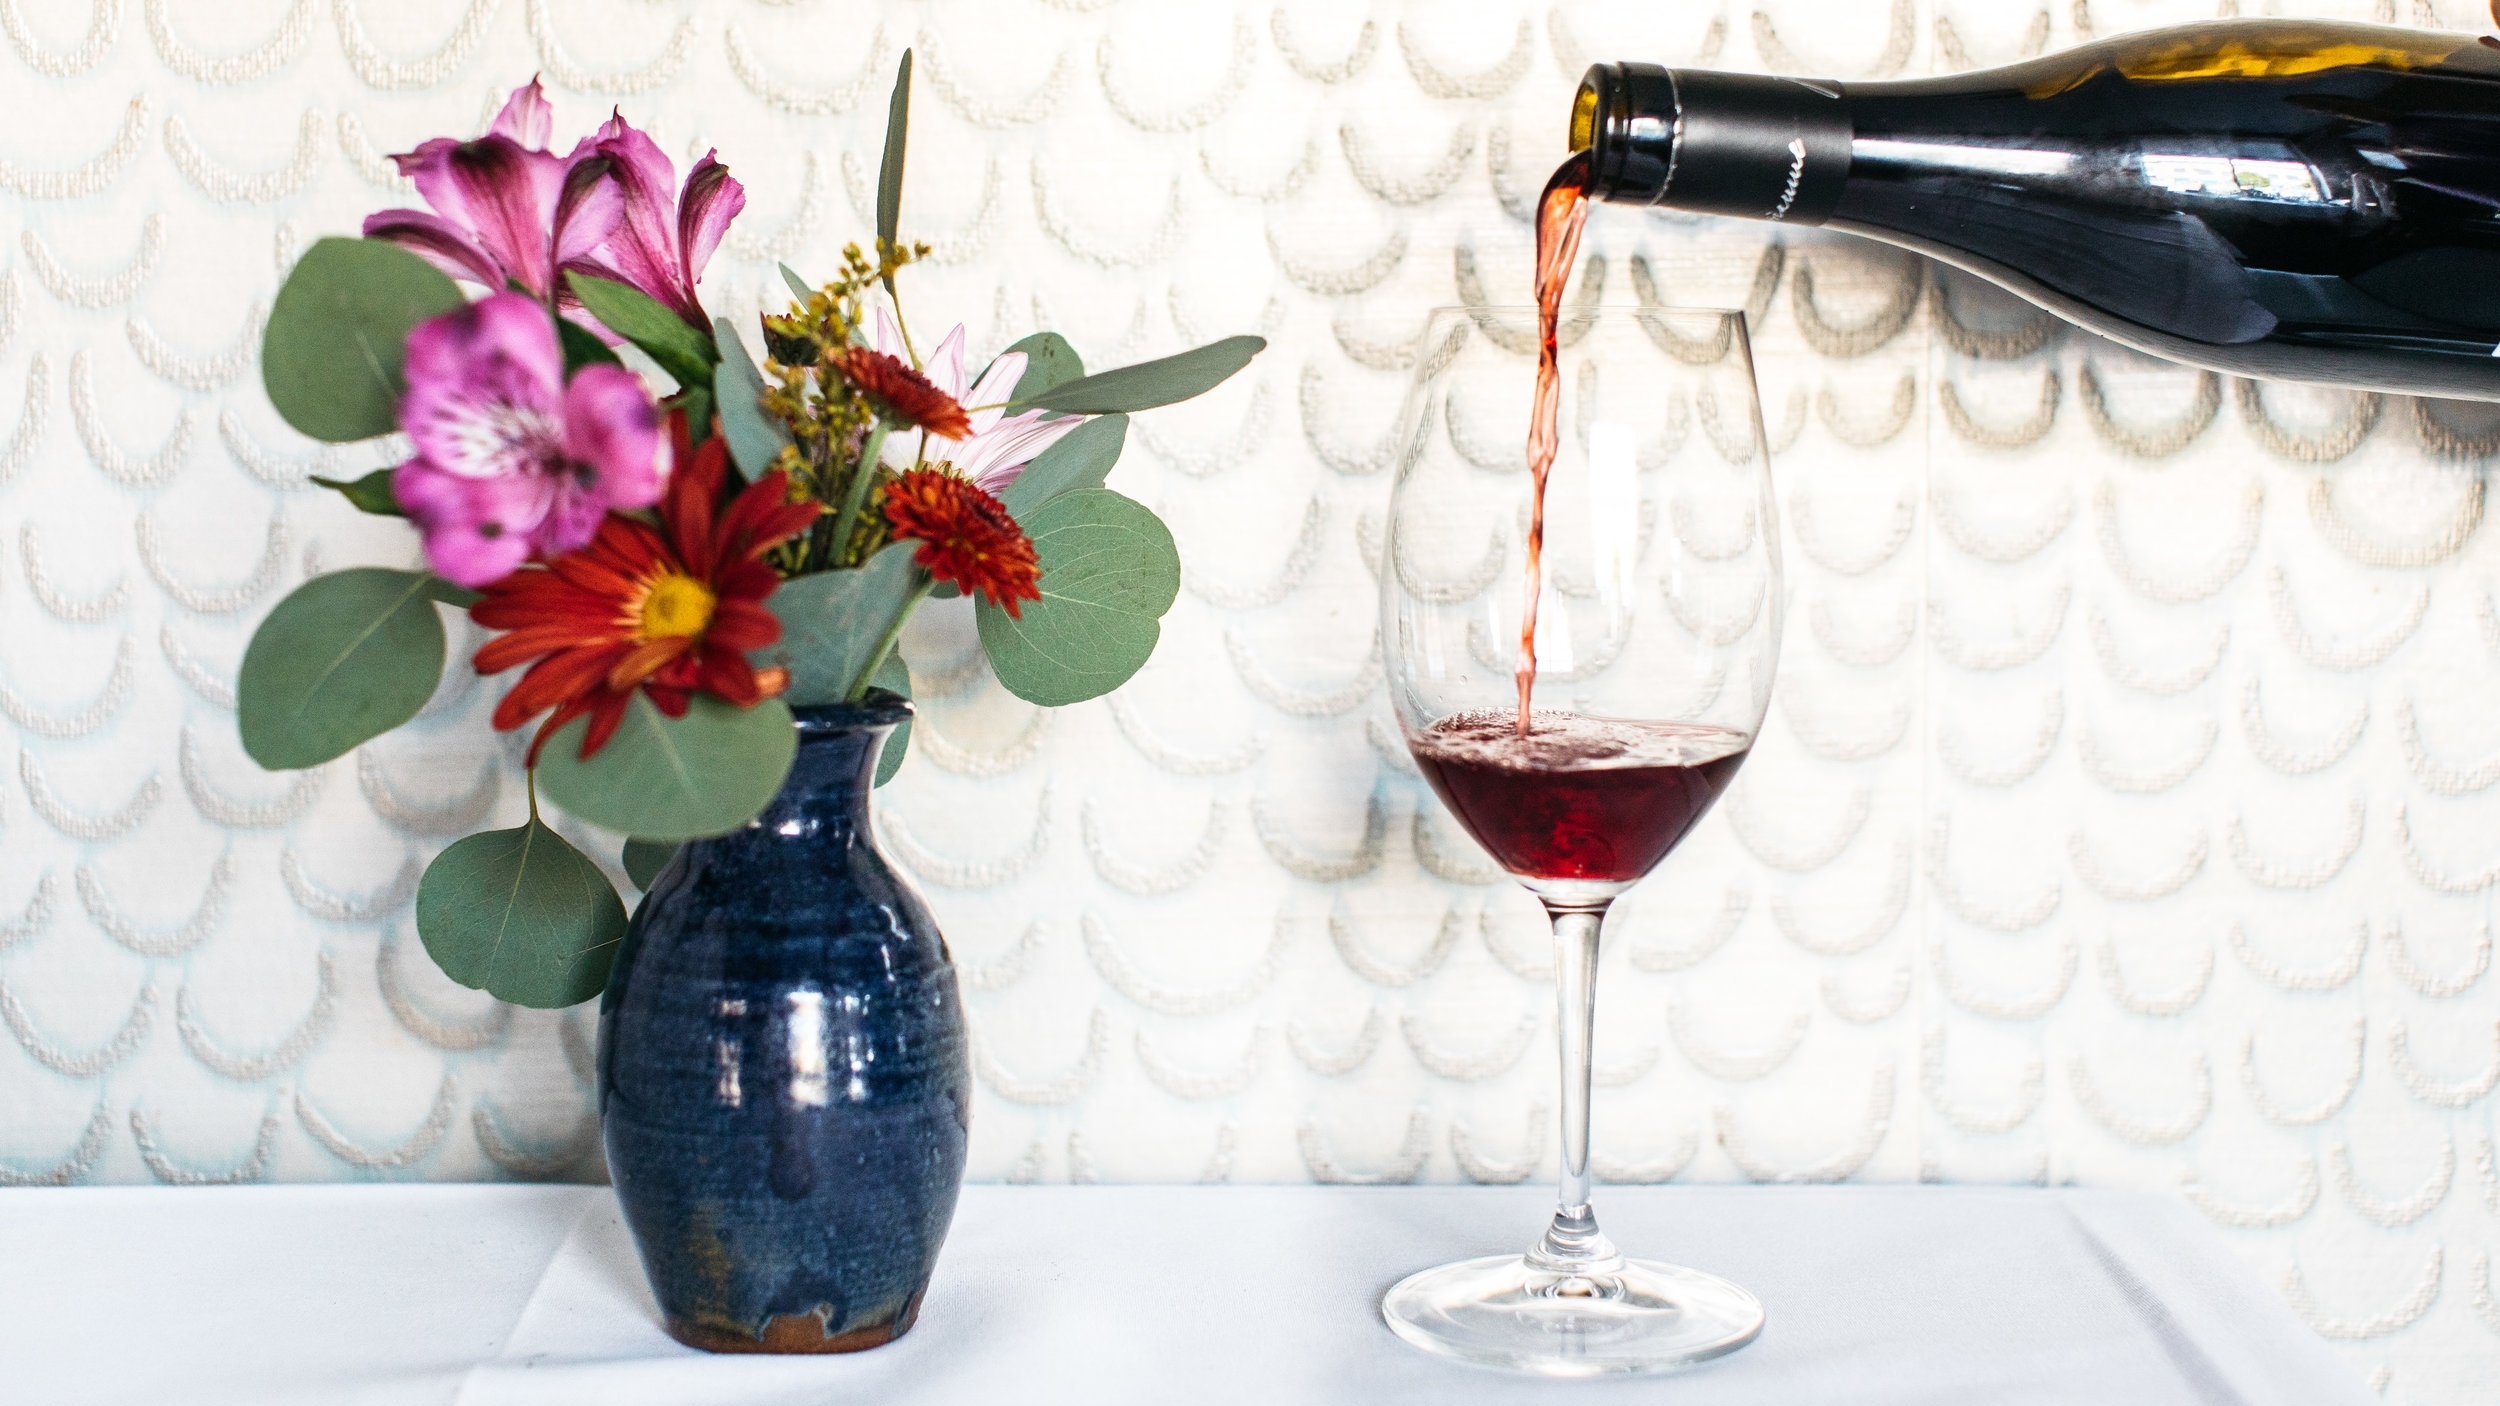 Shagbark Restaurant Wins  Wine Spectator  Restaurant Award in 2017   Shagbark Restaurant has been honored for its outstanding wine program in   Wine Spectator 's 2017 Restaurant Awards. The restaurant is recognized among other winners from all over the globe as a top destination for wine lovers.   Read more